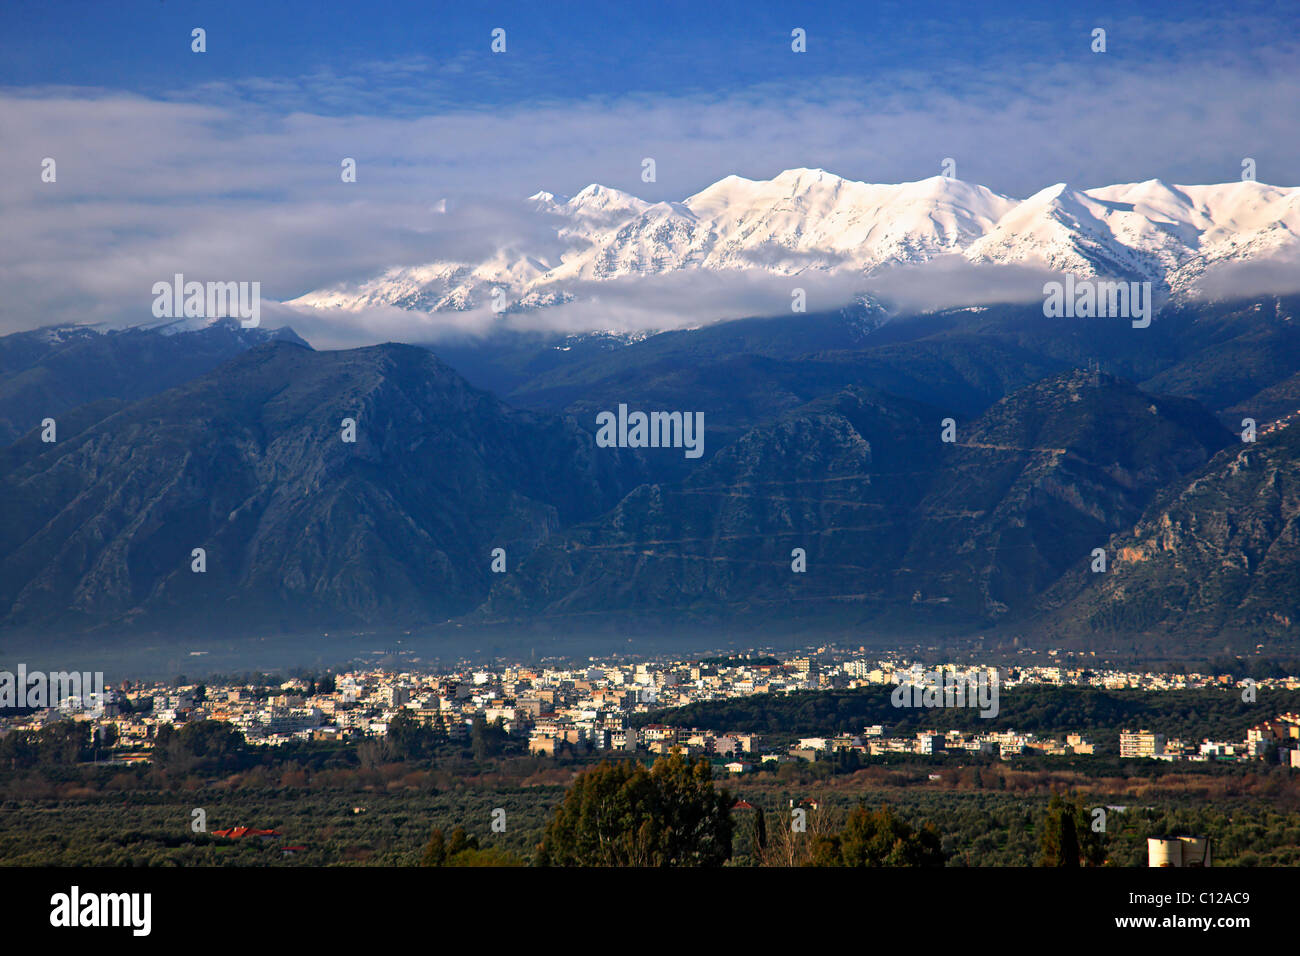 The modern town of Sparta, in the 'shadow' of imposing Taygetos mountain, Lakonia, Greece. - Stock Image